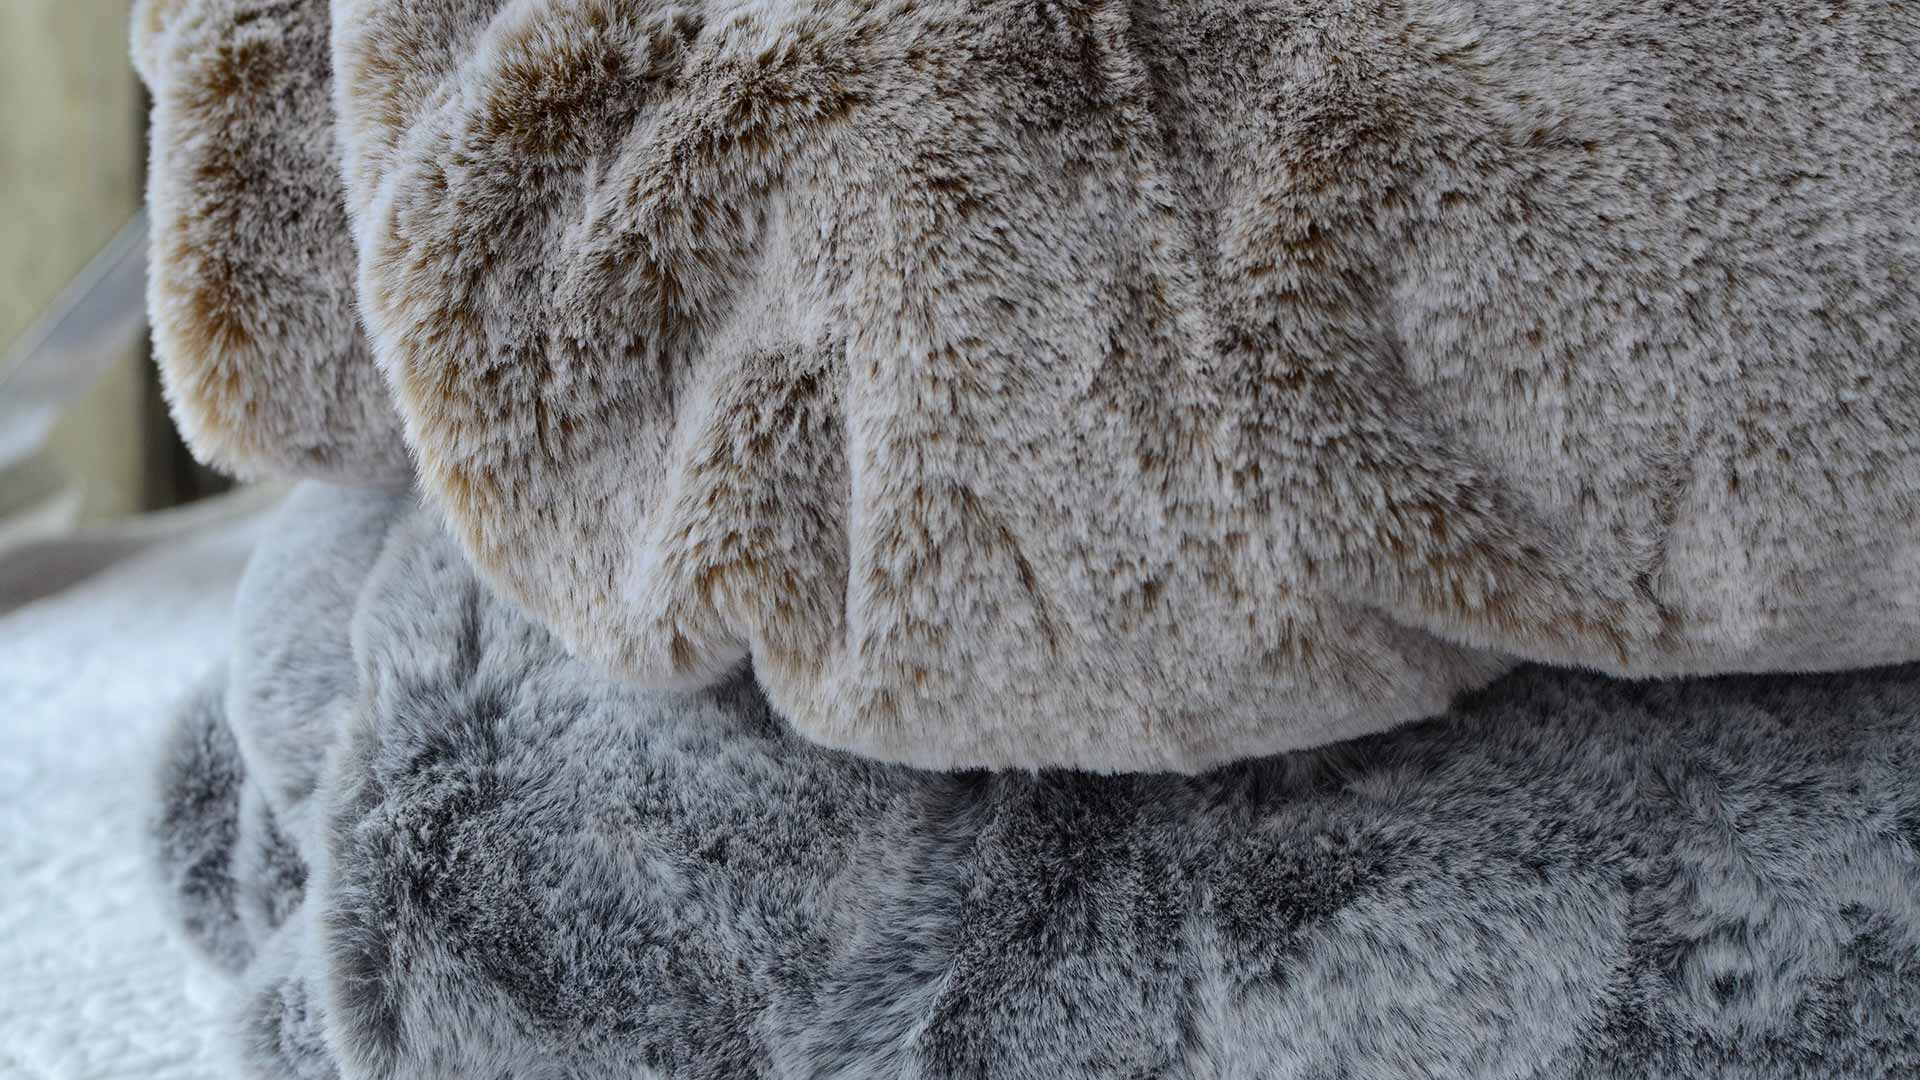 Luxury Frosted Faux Fur Throws Blankets Natural Bed